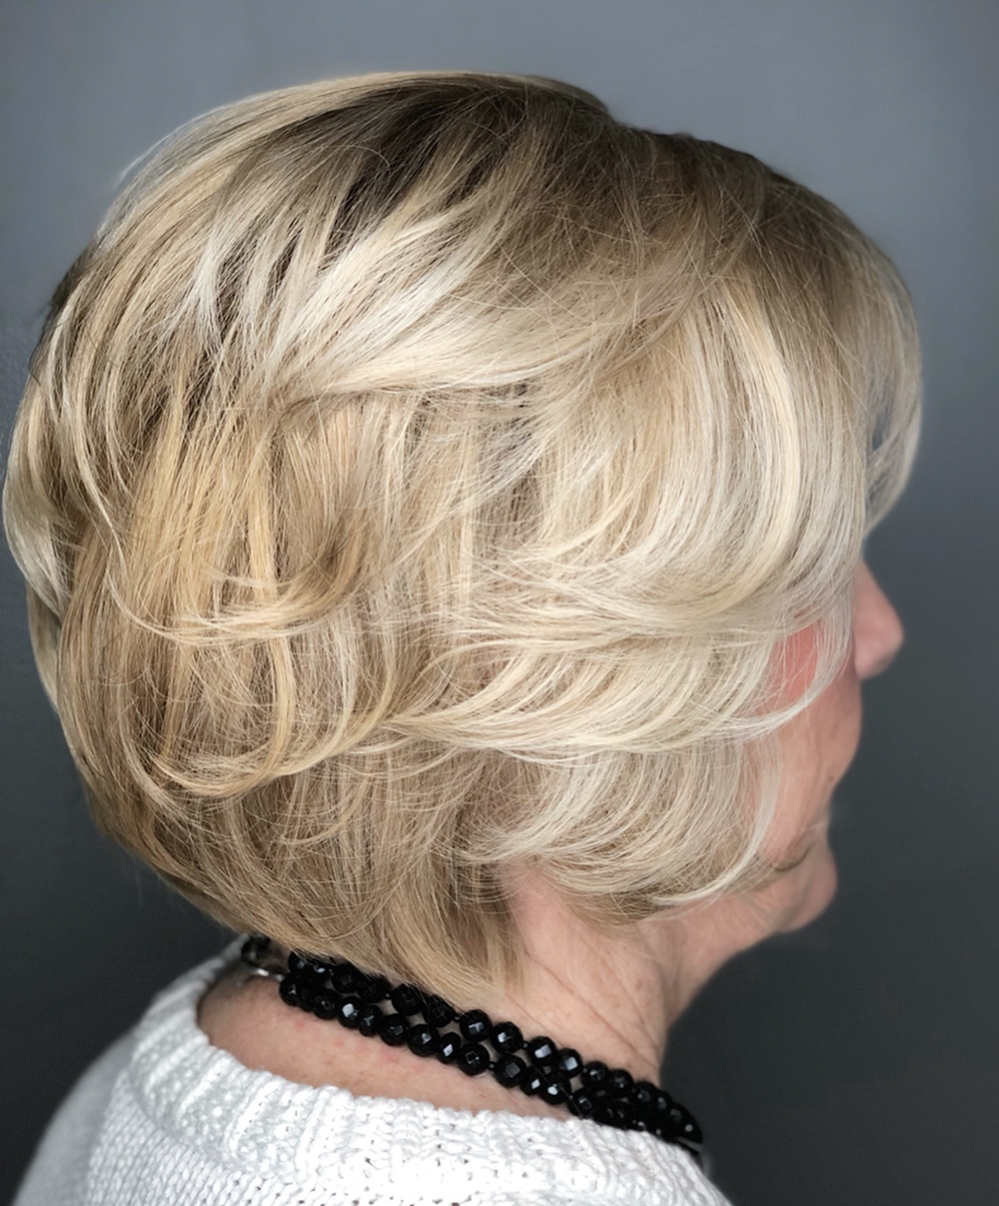 50+ Short Layered Blonde Bob Hairstyle